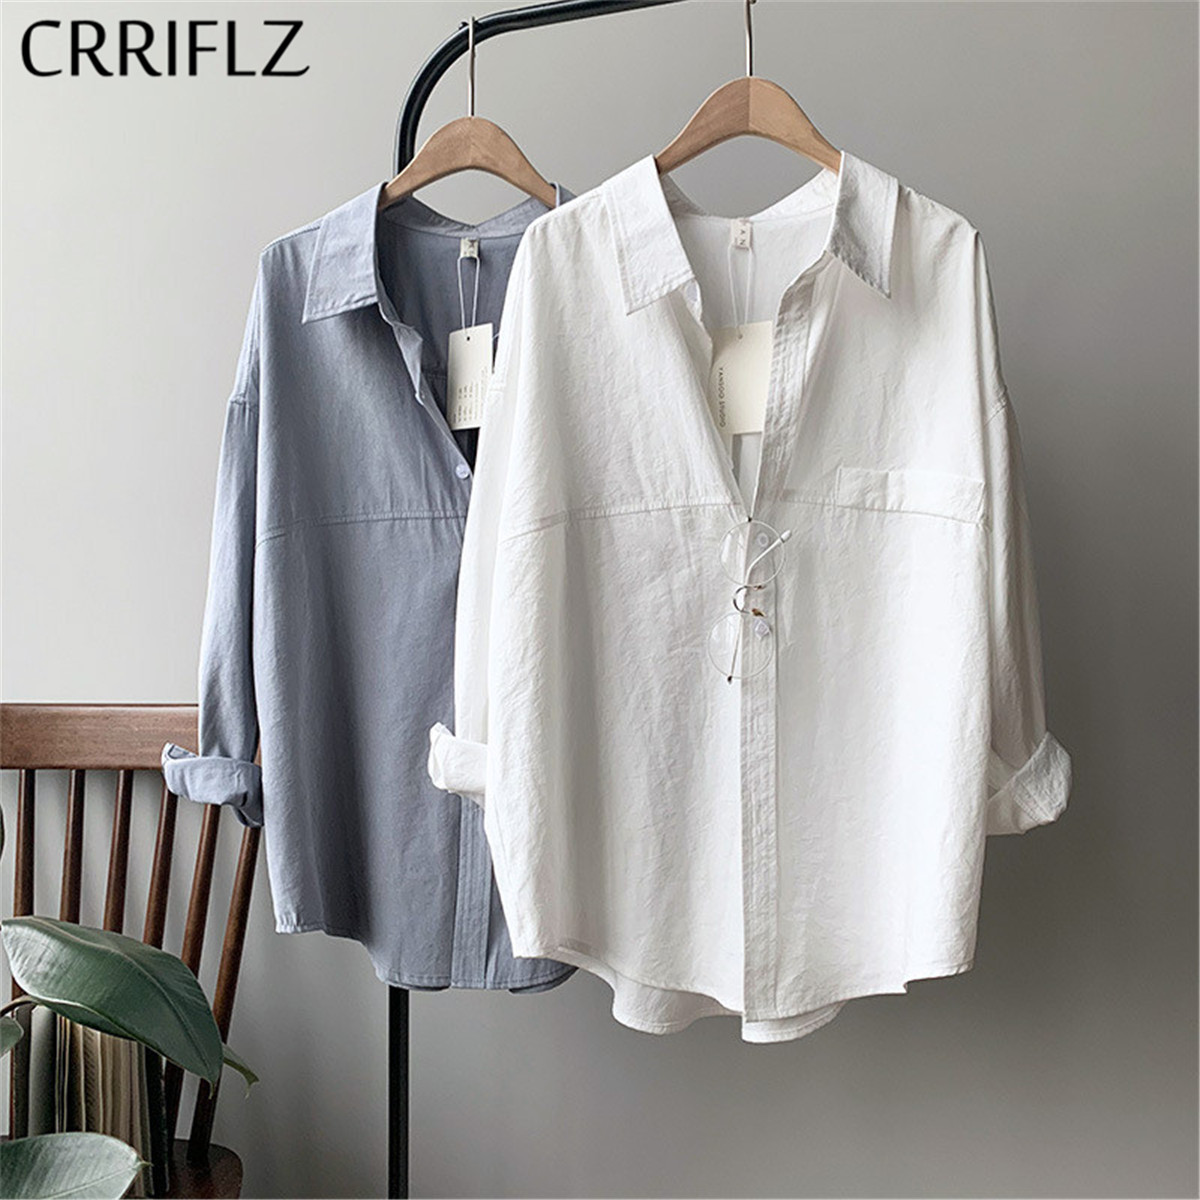 crriflz women's cotton feel shirt imitation suede 2020 spring new long sleeve retro blouses shirts turn-down solid oversize tops(China)